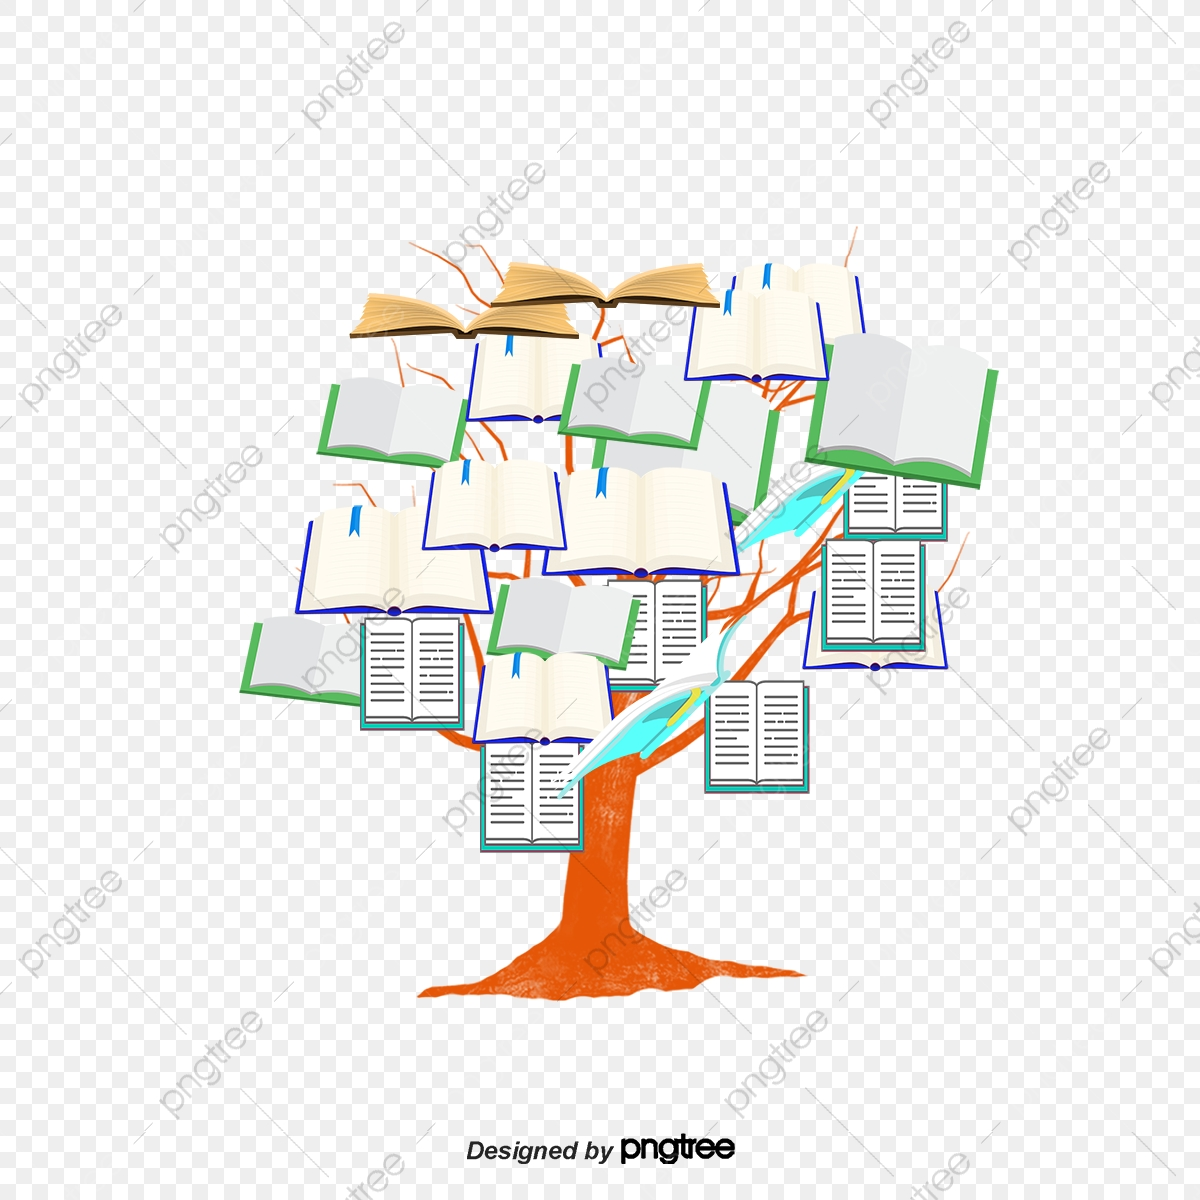 An open book with a tree stock vector. Illustration of leaves - 39485220 |  Open book, Book clip art, White background